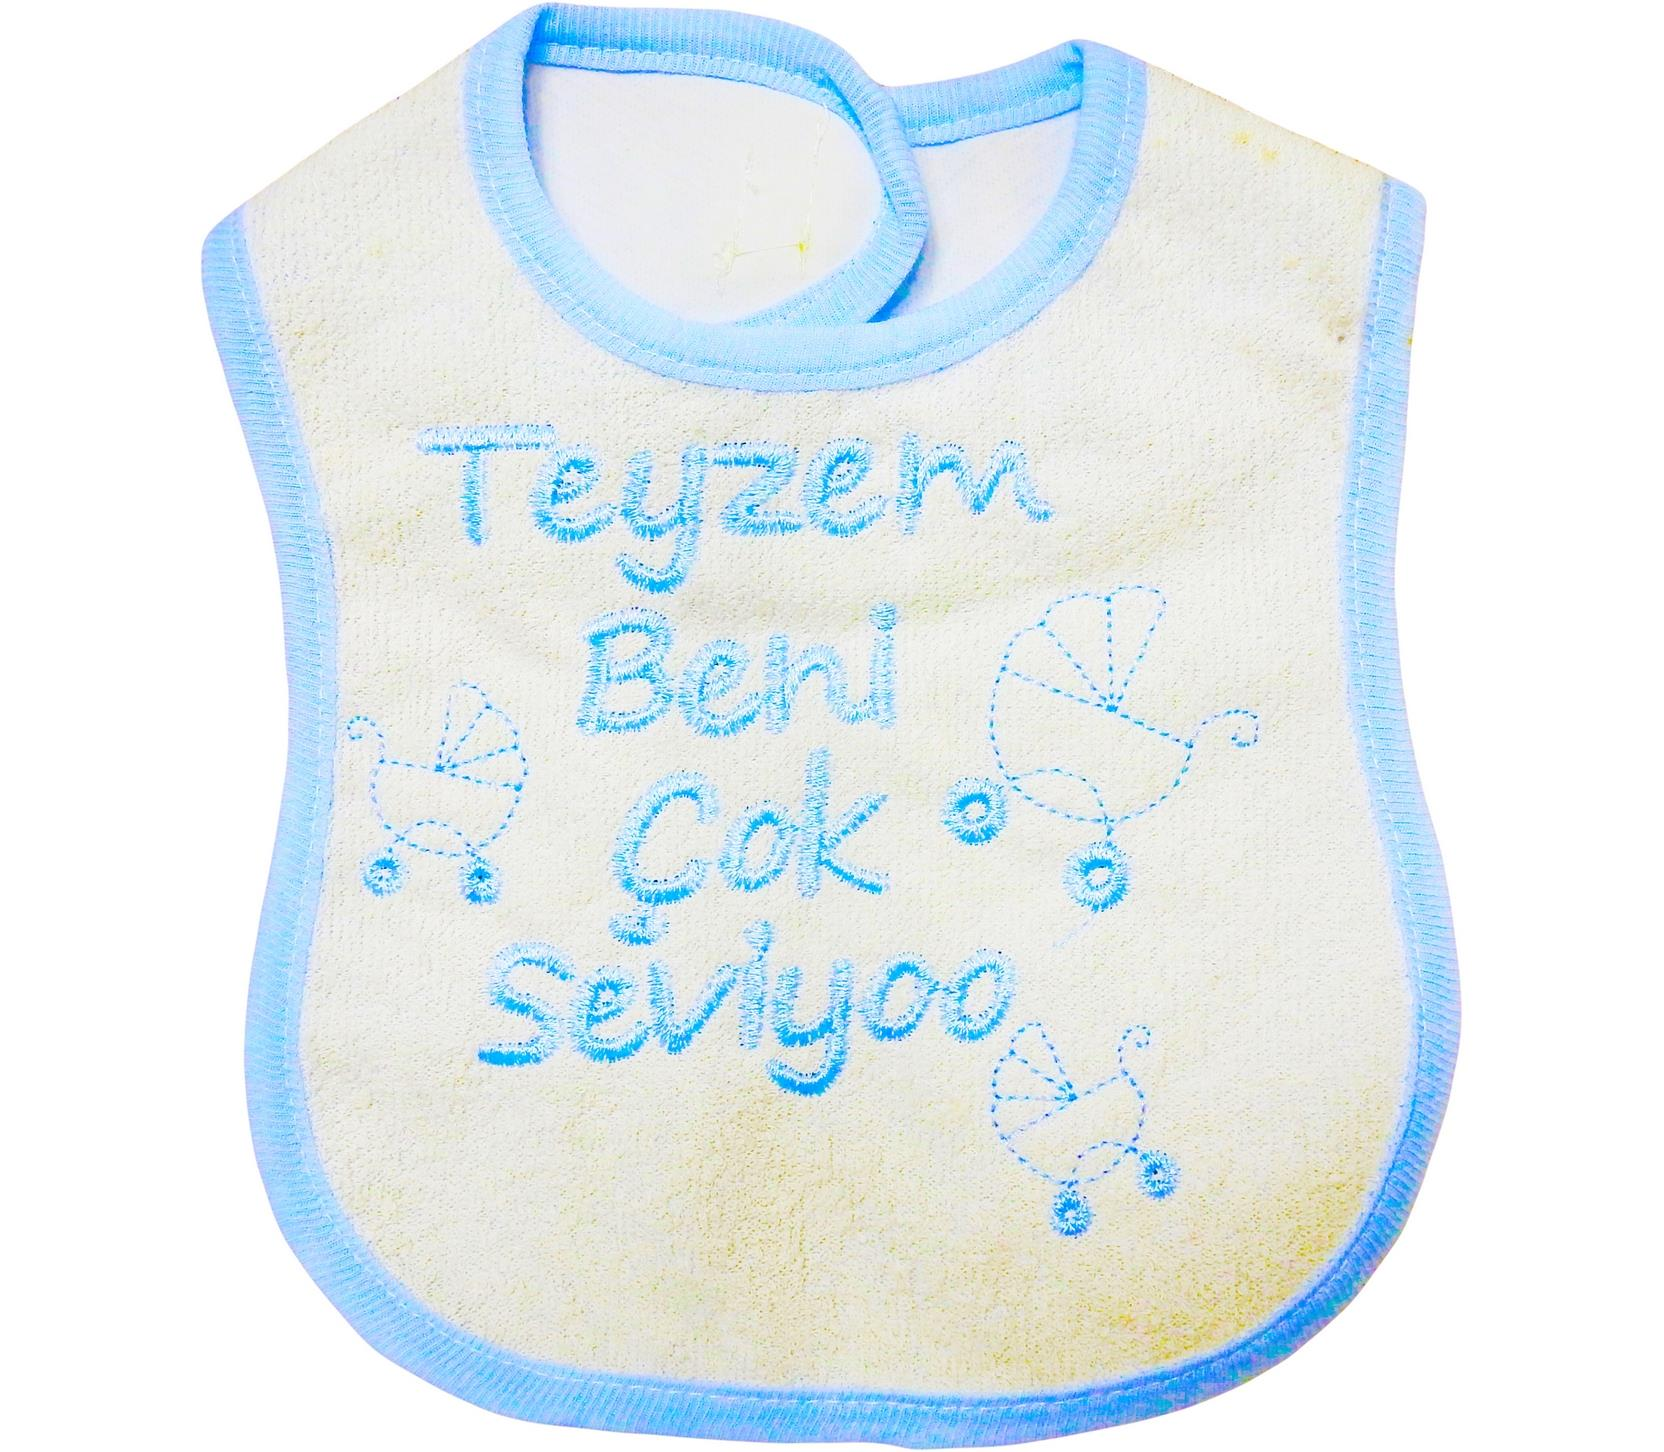 2030 6 tracks my aunt loves me printed apron for babies